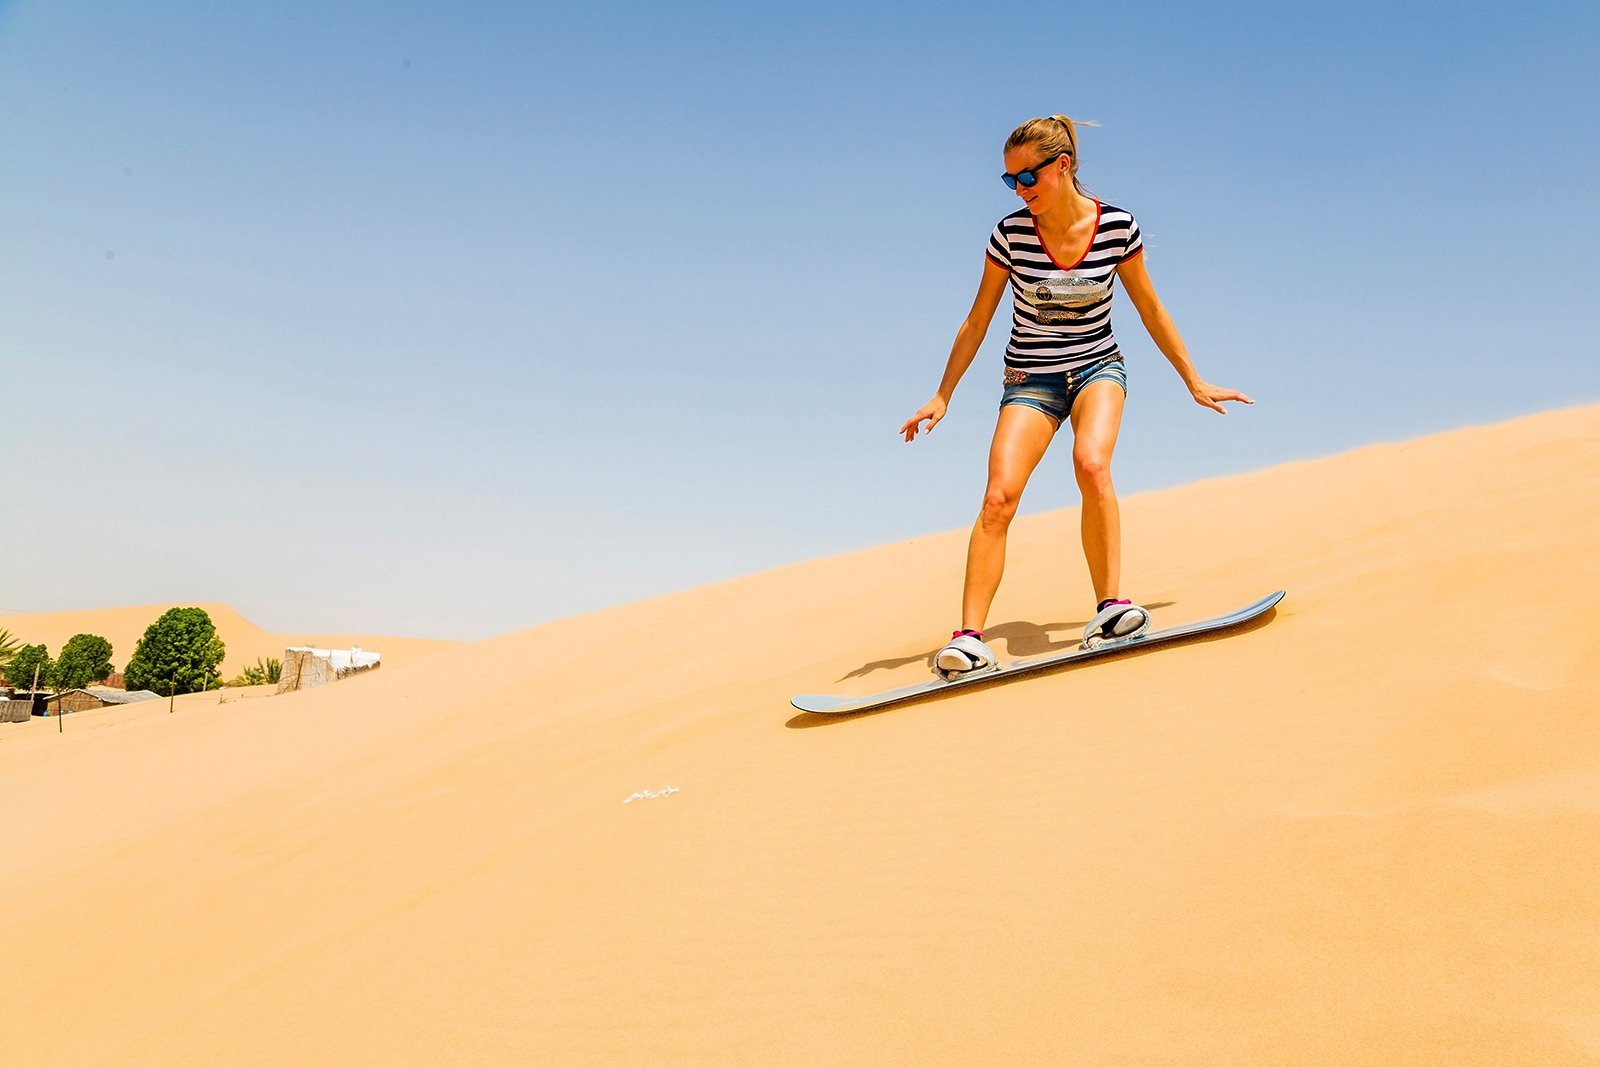 How to try sandboarding on sand dunes in Dubai